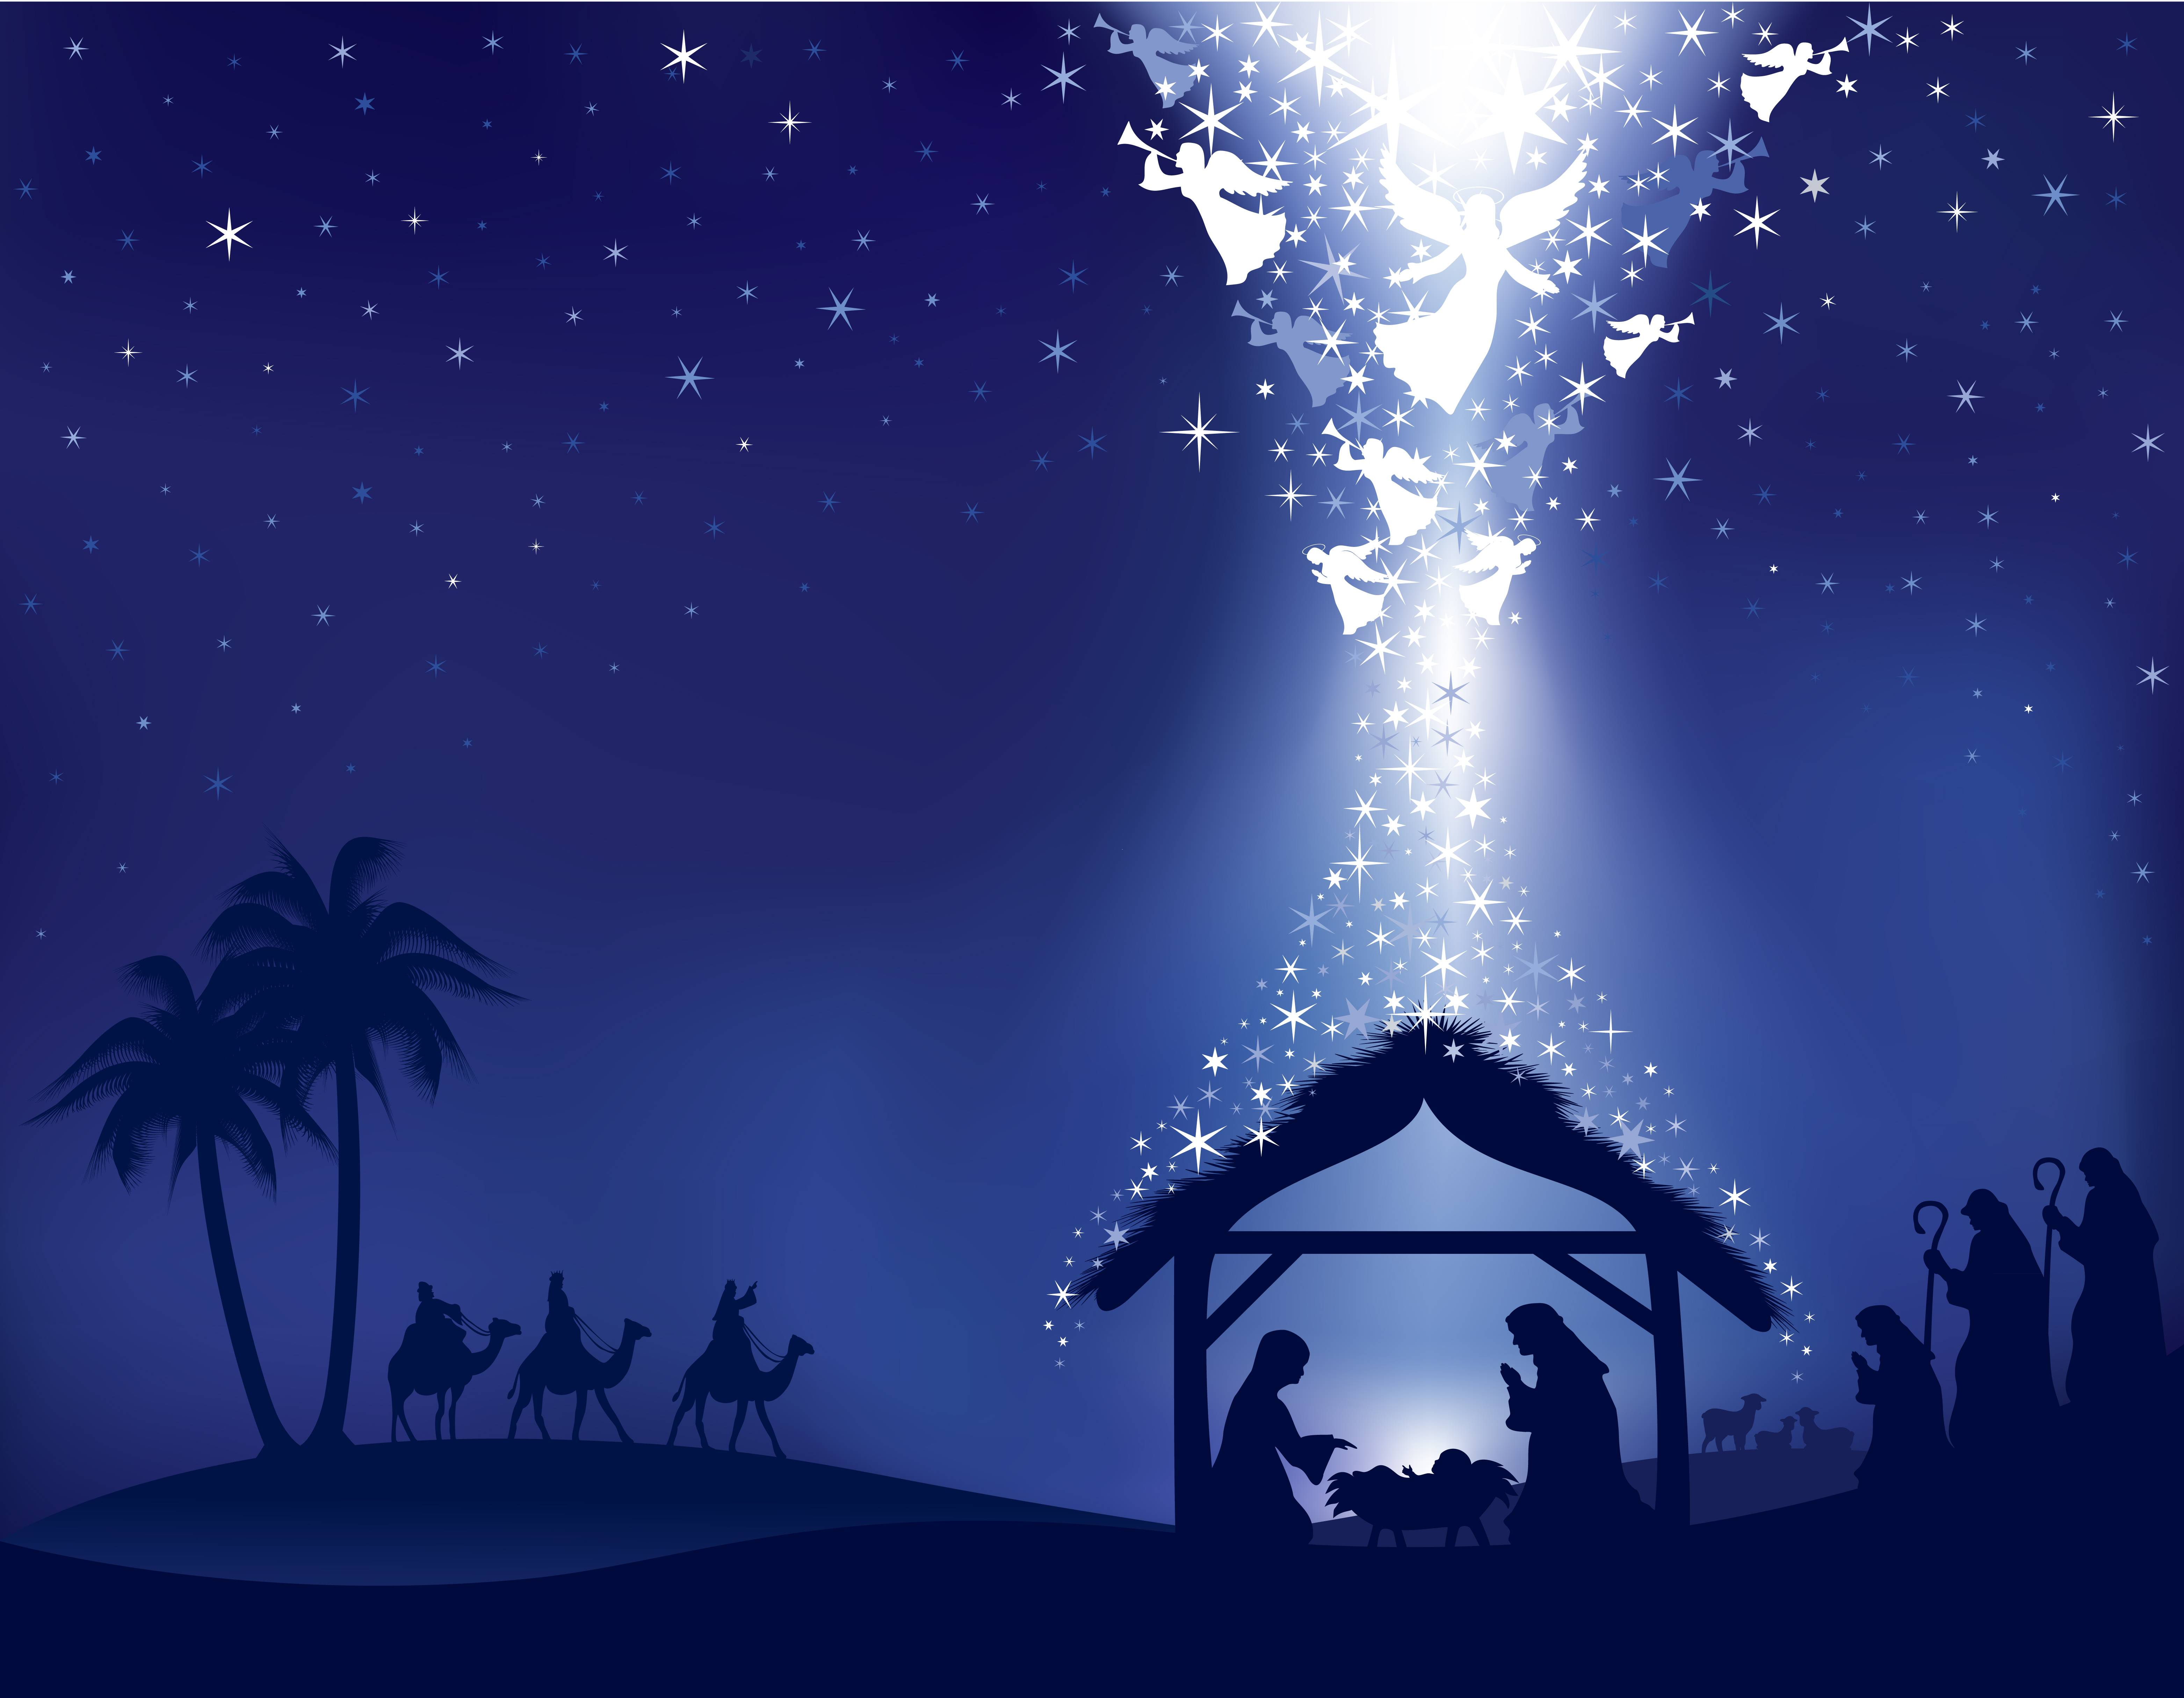 Christmas Crib Images Hd.Christian Christmas Nativity Wallpapers Top Free Christian